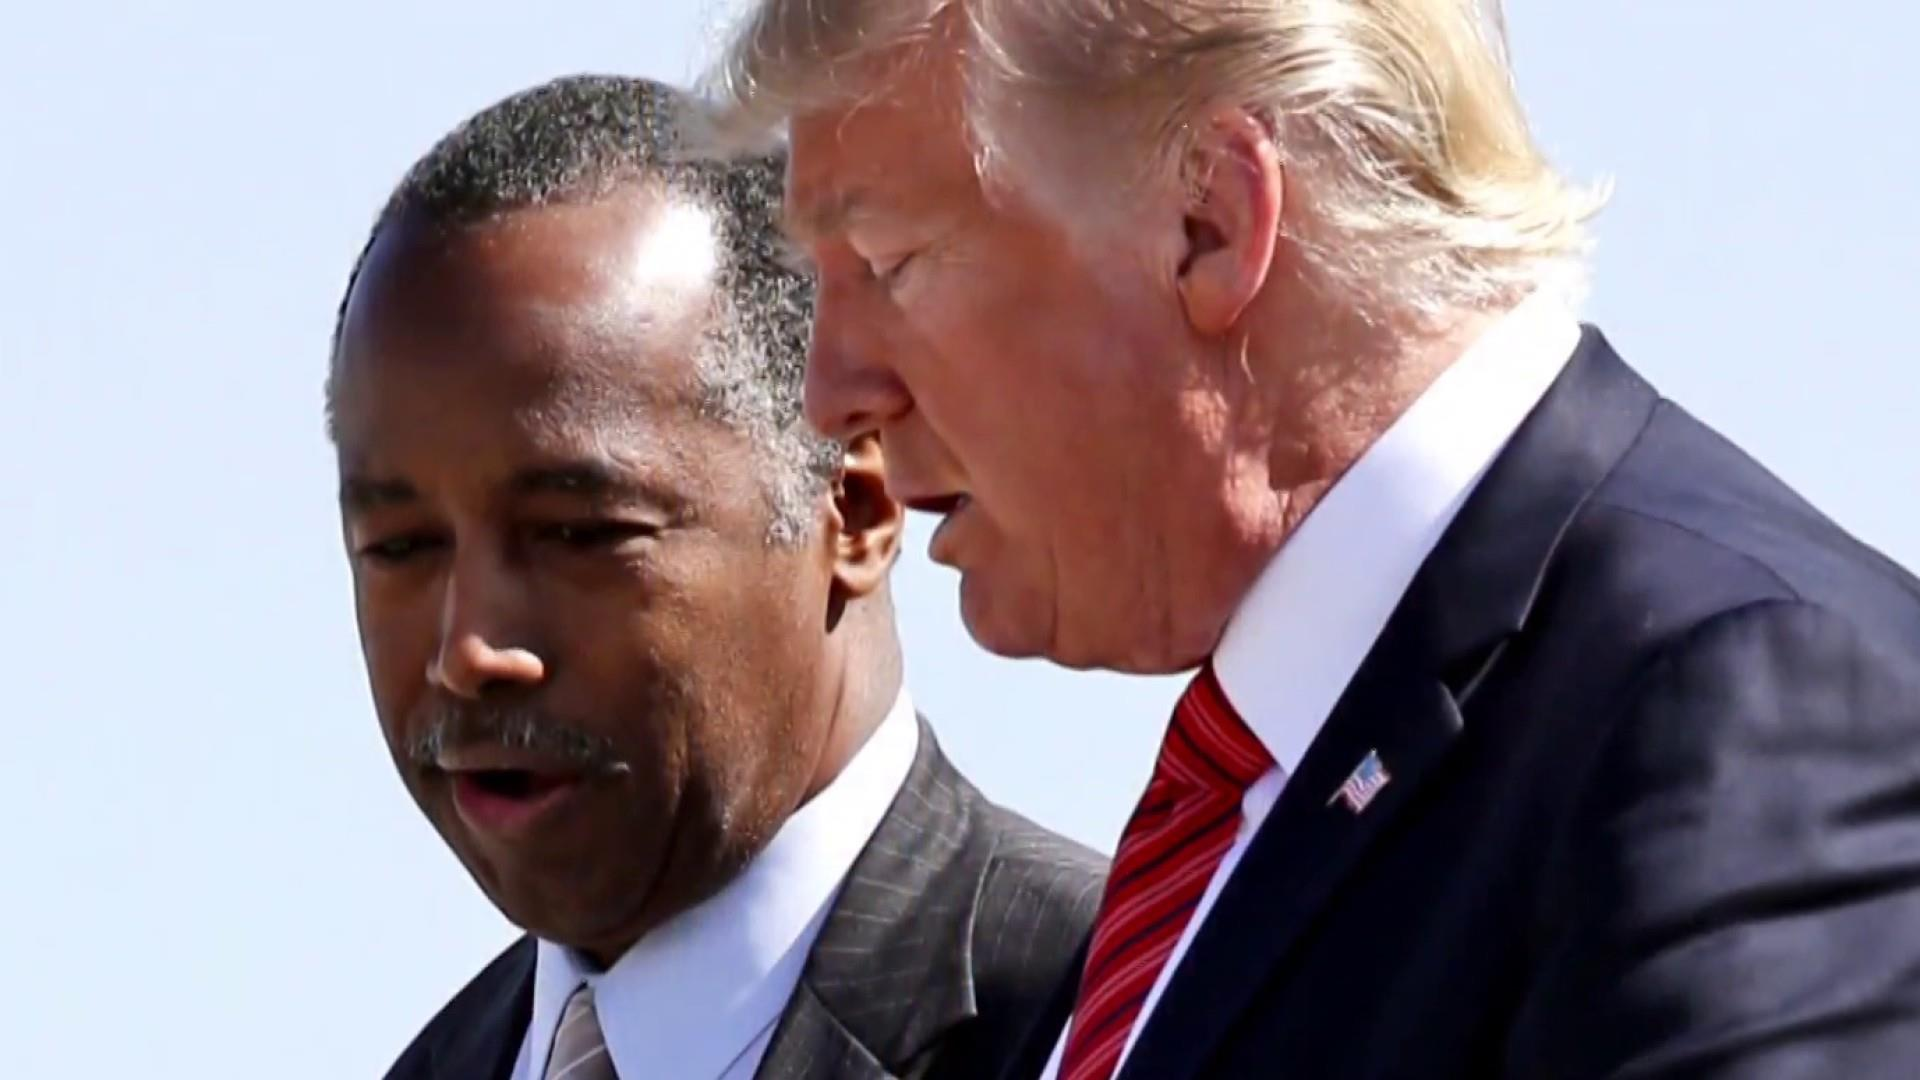 HUD housing conditions worsening under Ben Carson